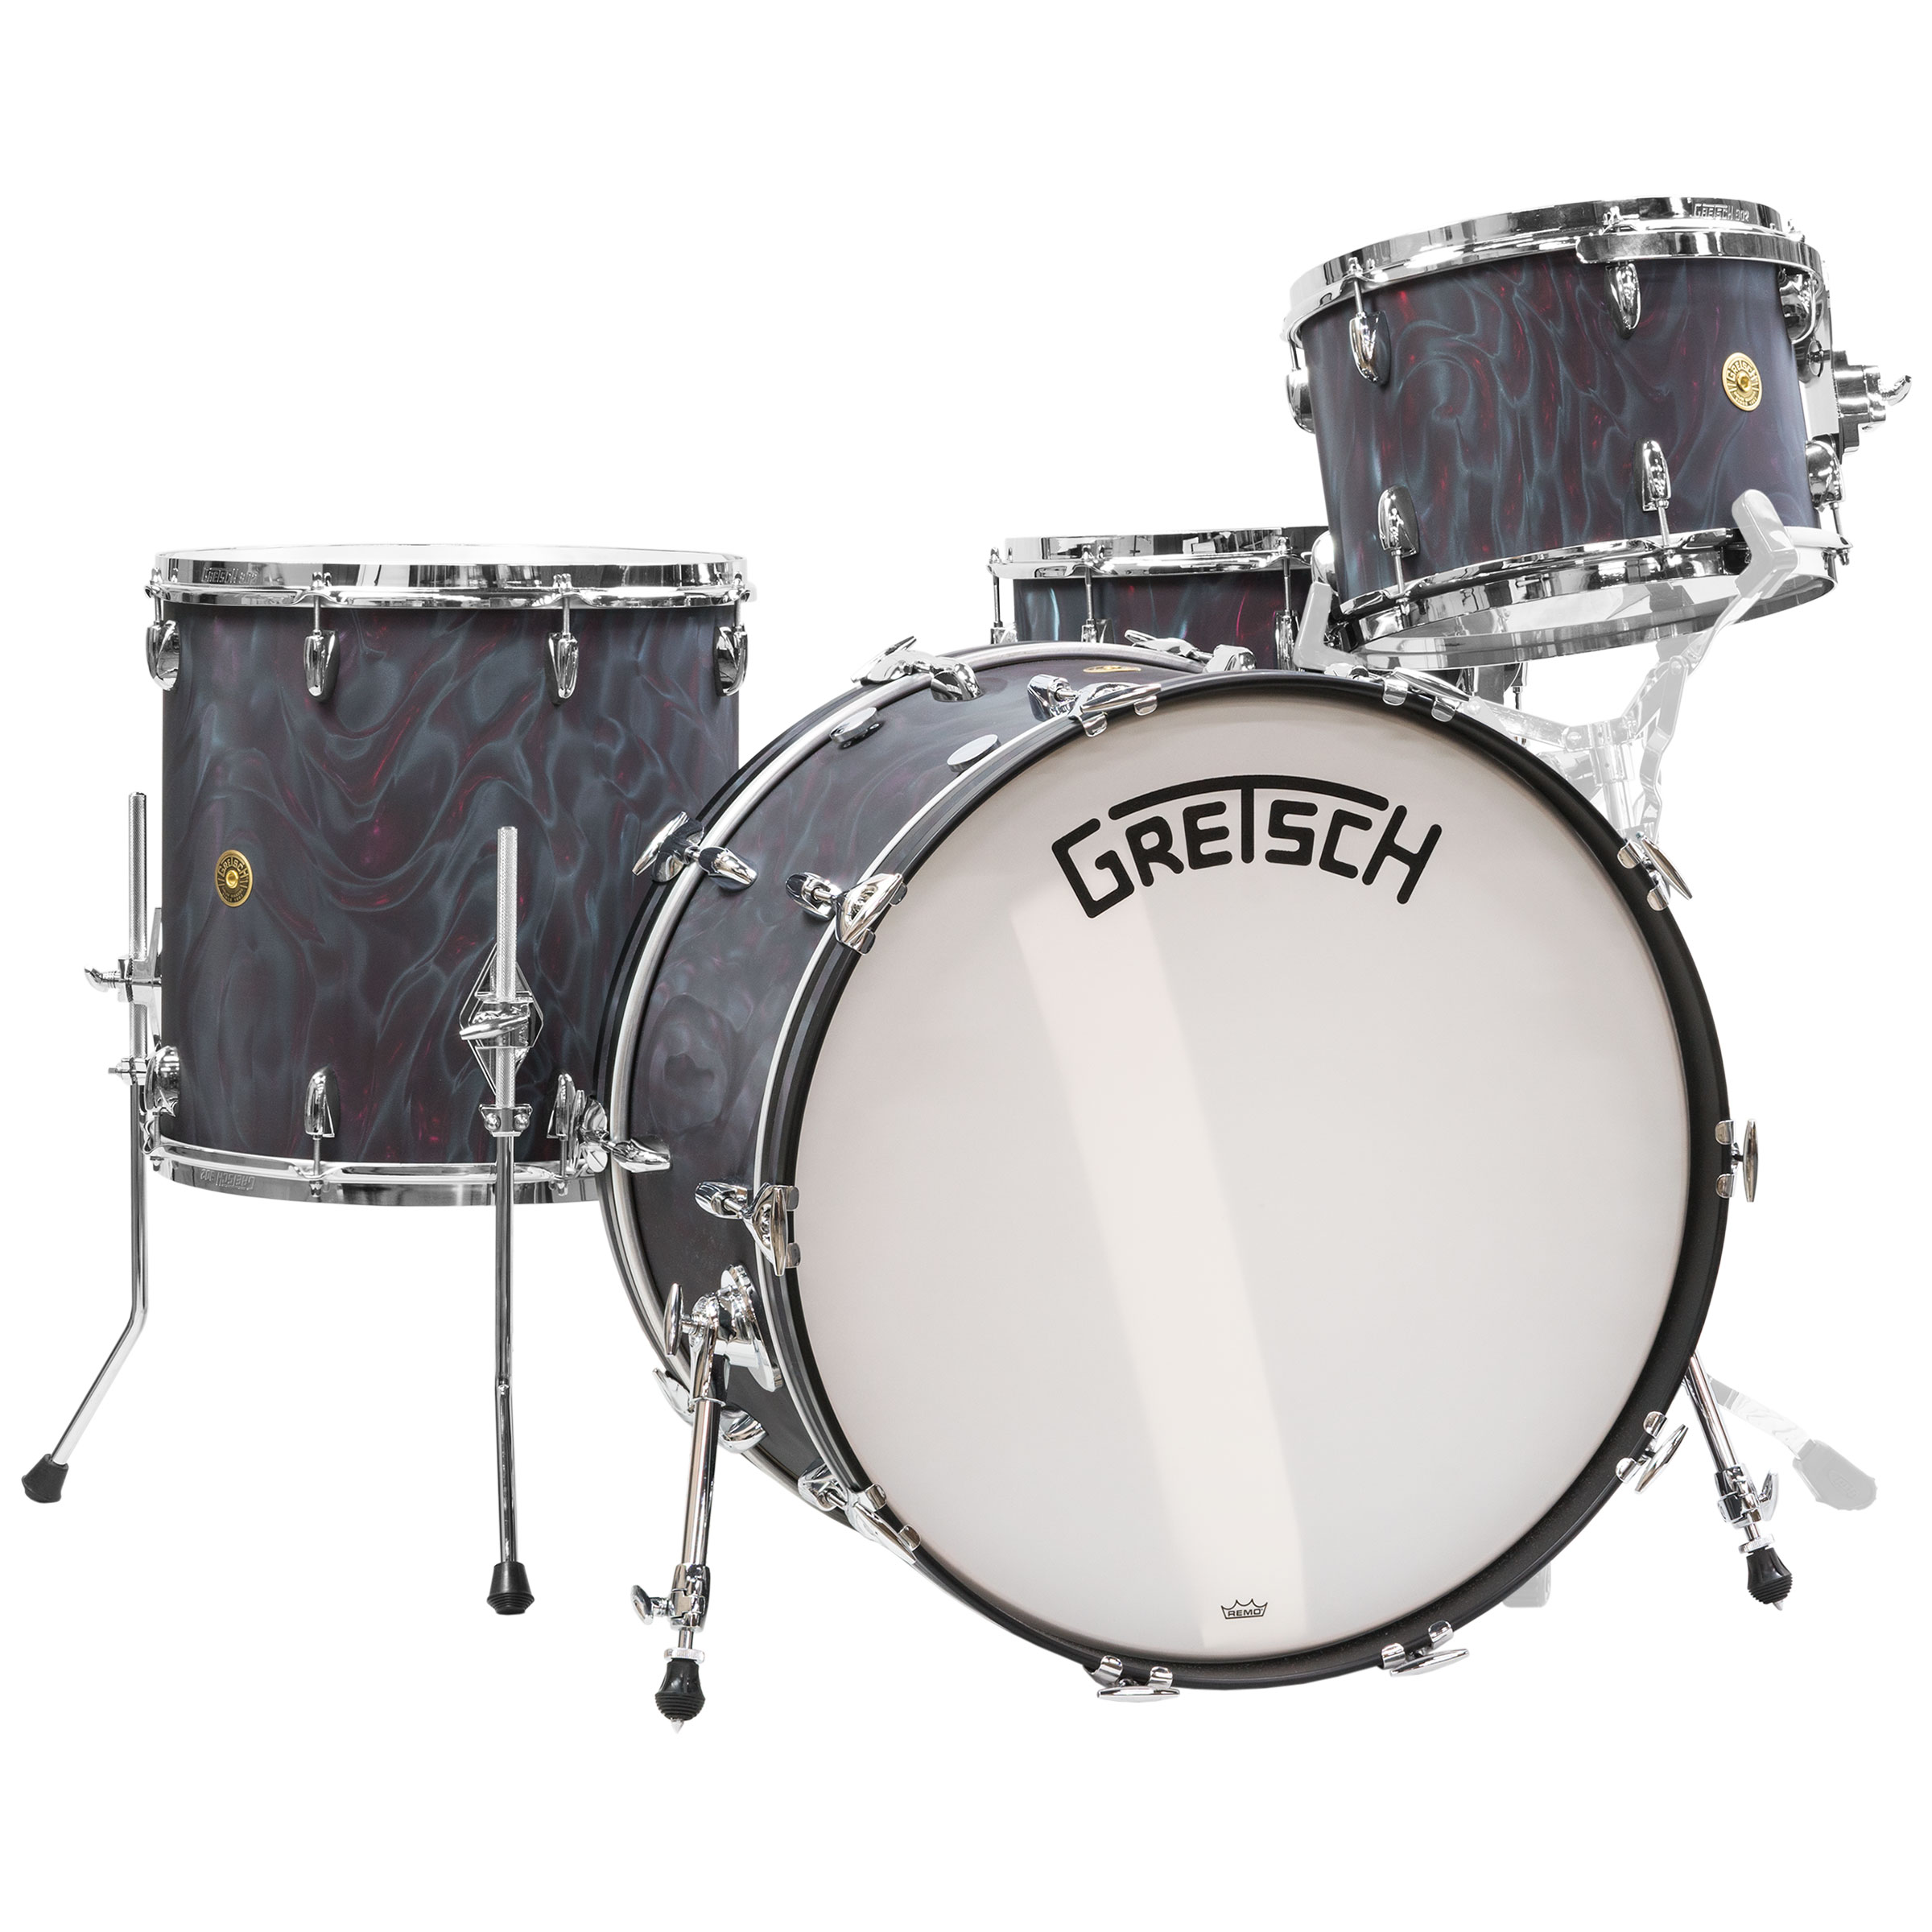 "Gretsch Broadkaster 4-Piece Drum Set Shell Pack (24"" Bass, 13/16"" Toms, 6.5 x 14"" Snare) in Black Satin Flame"